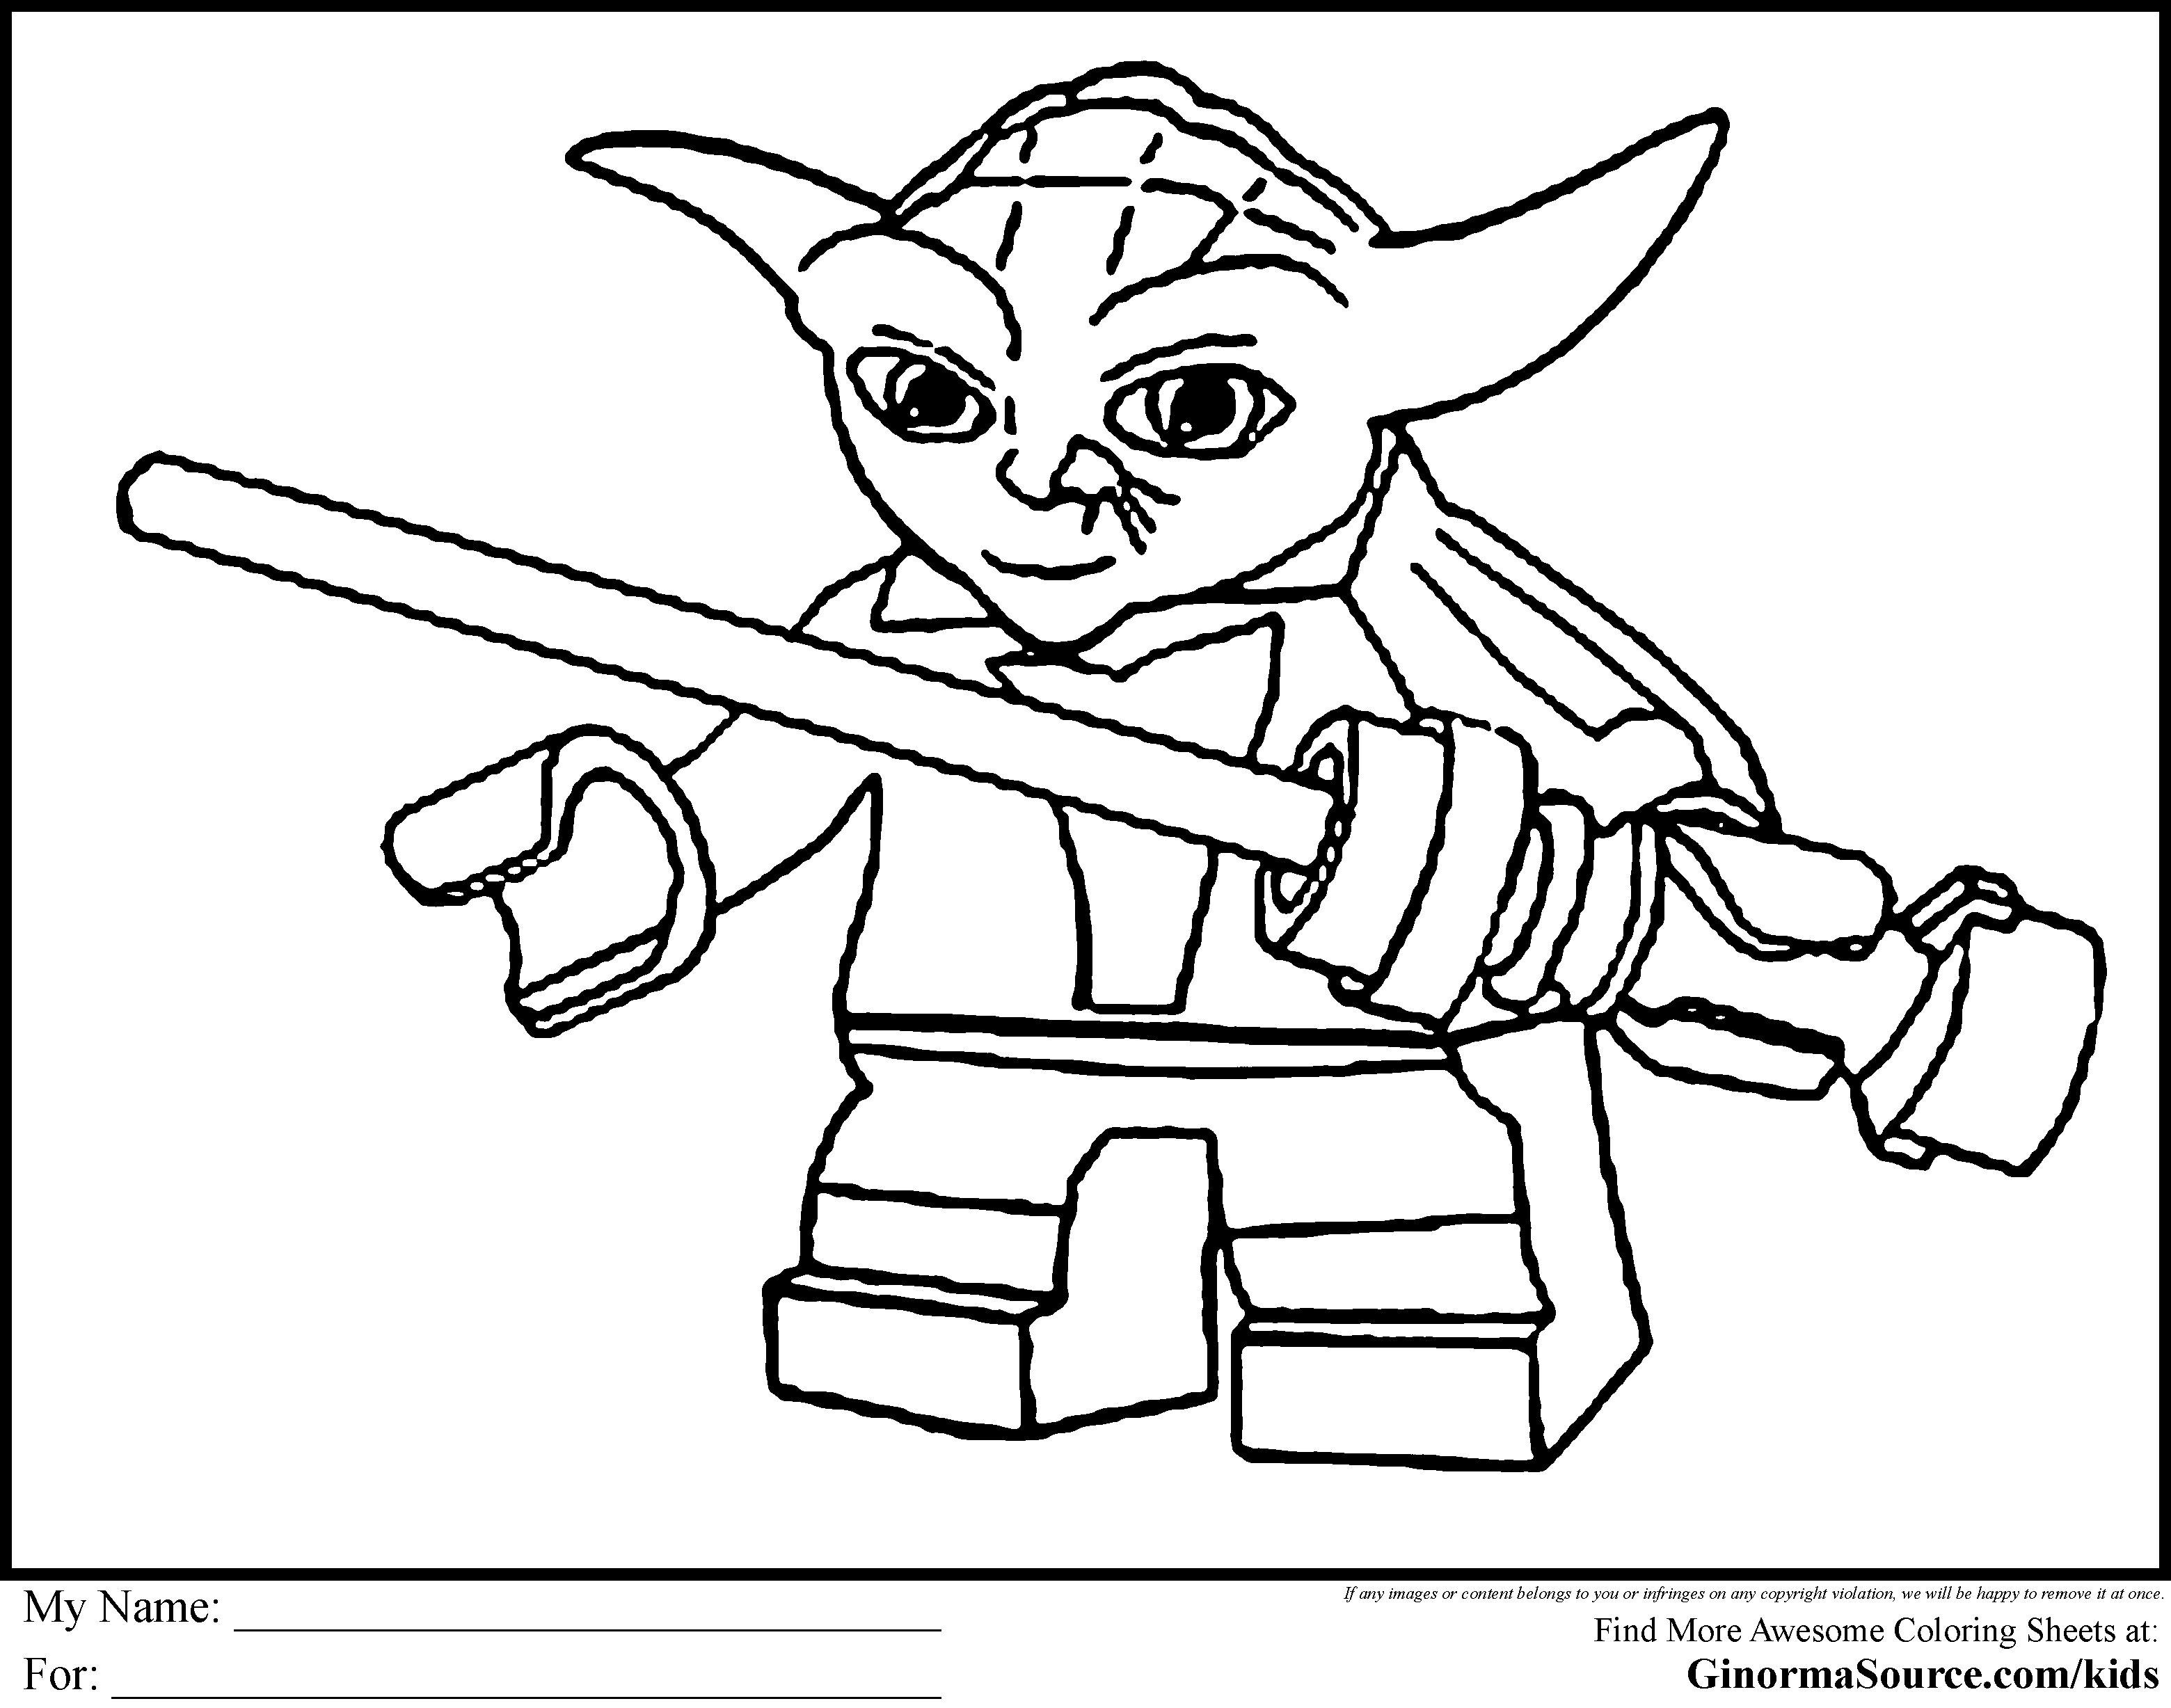 3120x2455 Coloring Pages Star Wars For Sweet Draw Printable Coloring Pages